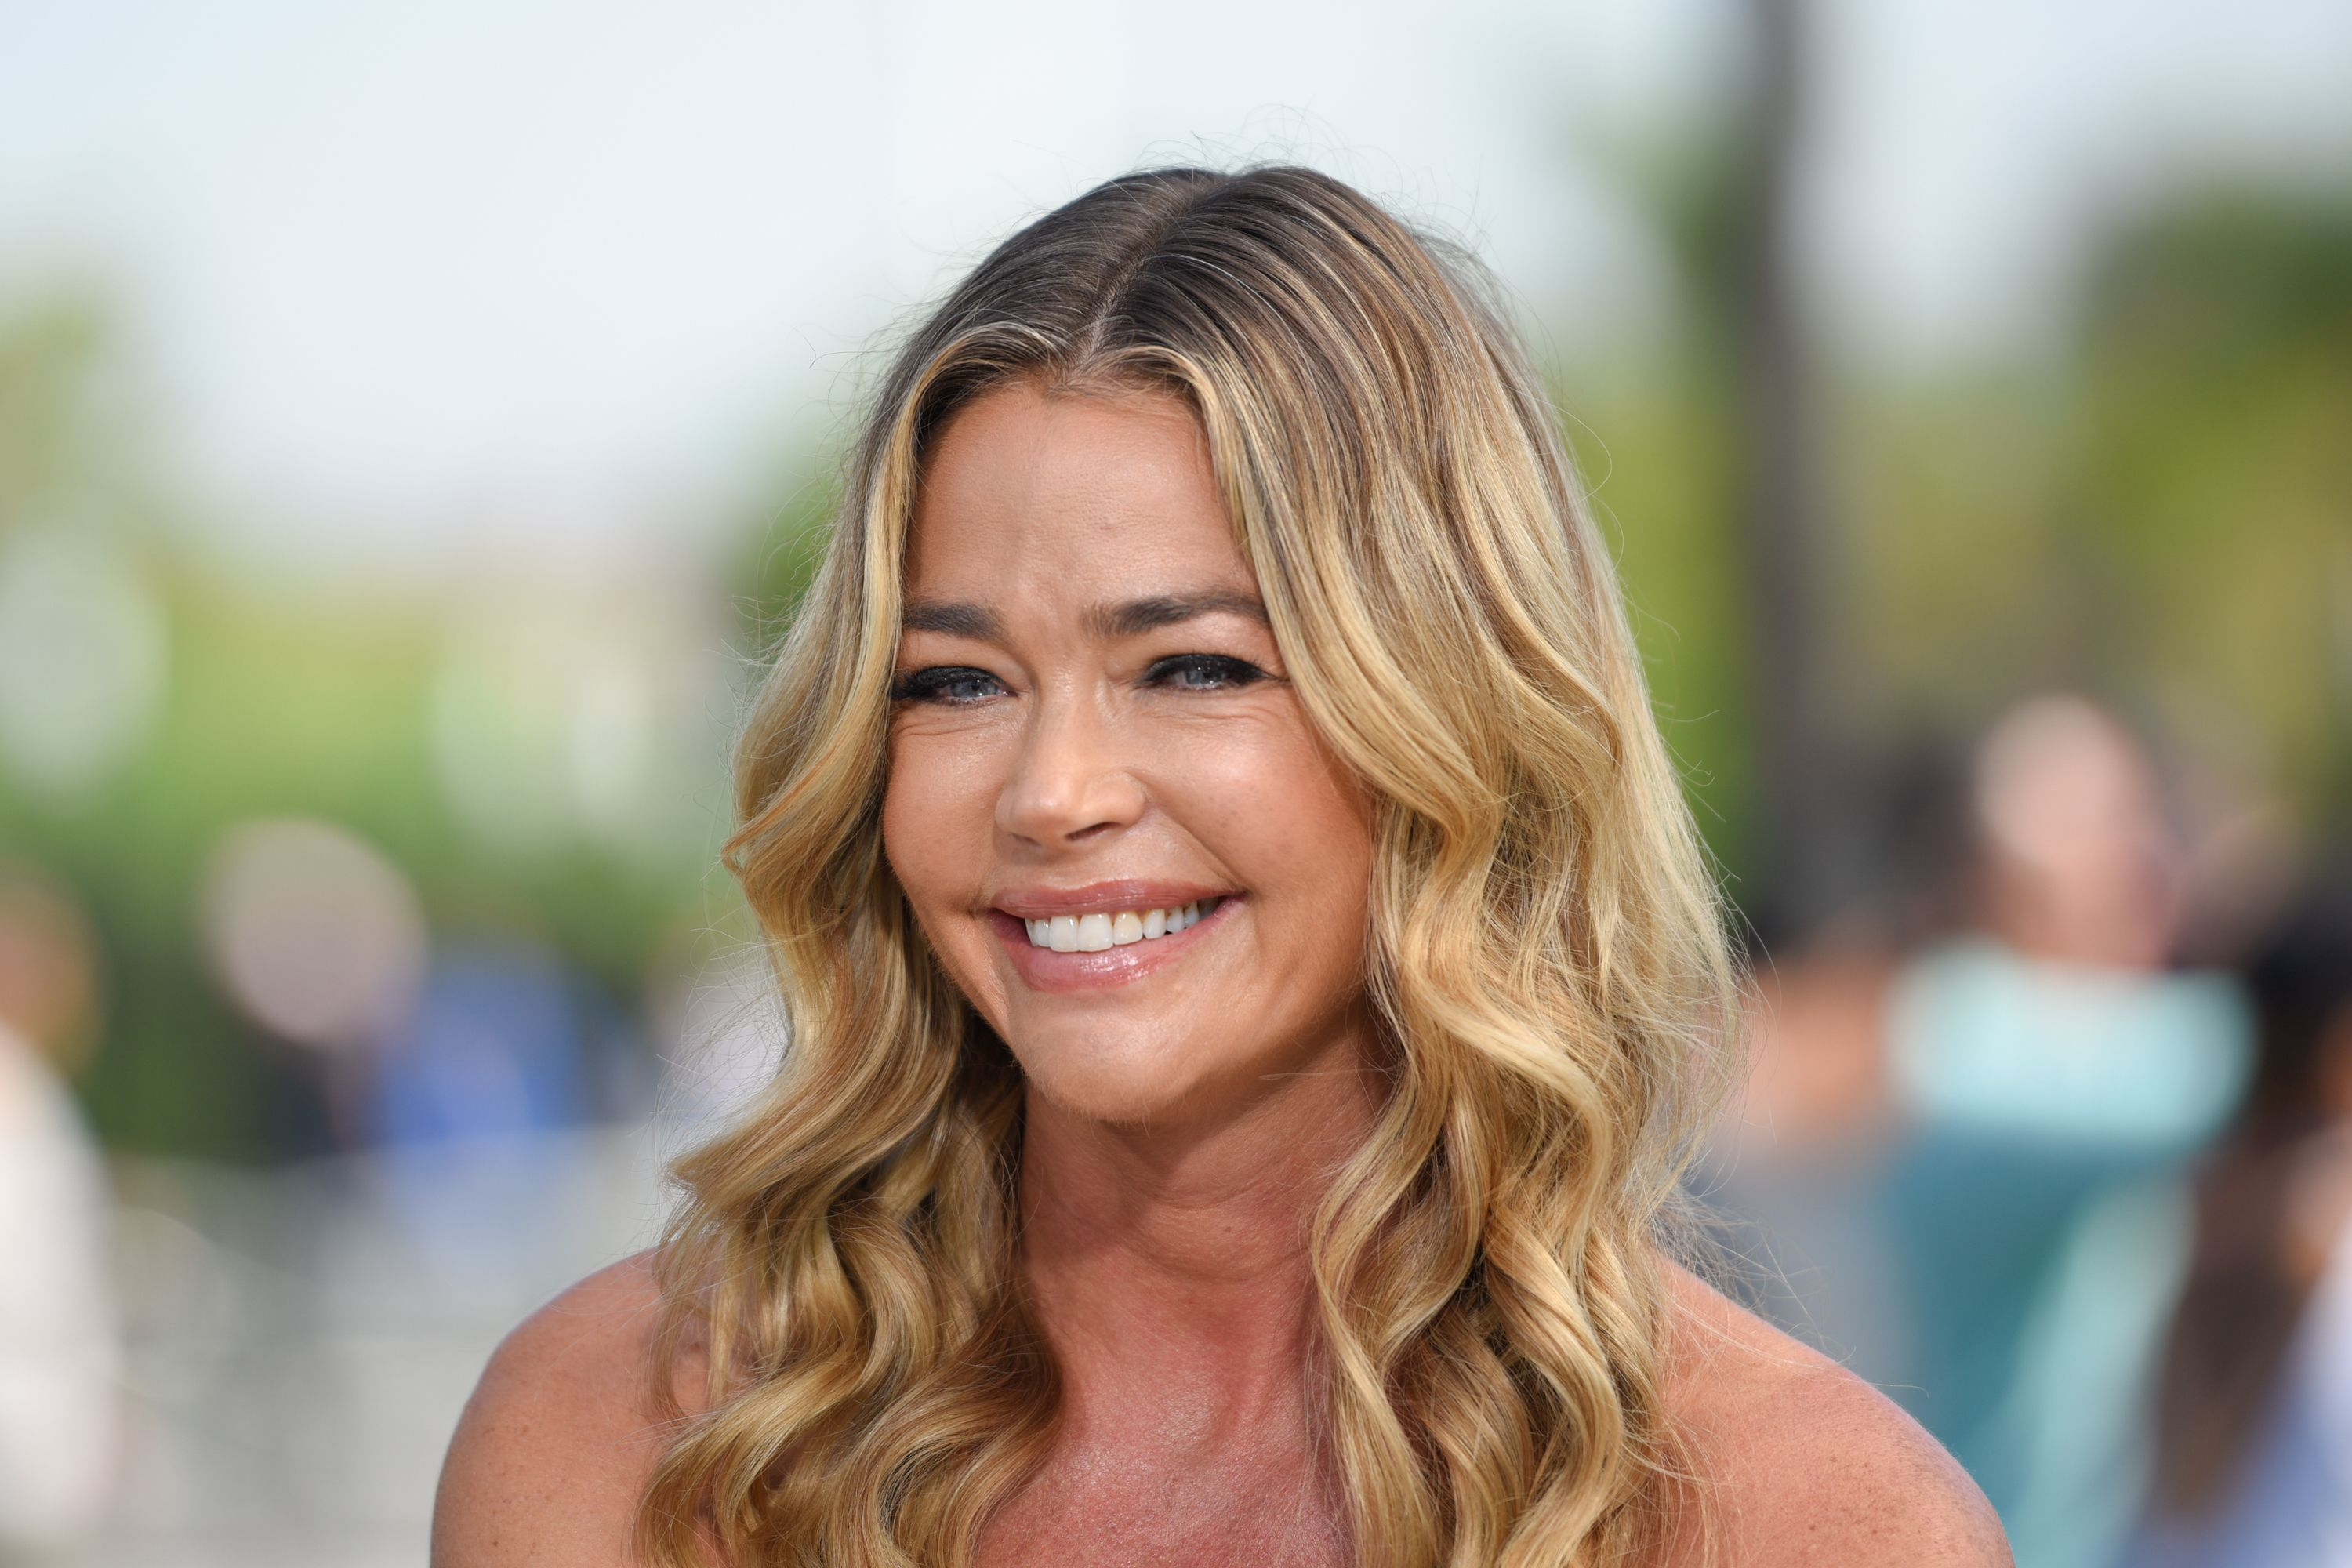 """Denise Richards during """"Extra"""" at Universal Studios Hollywood on August 13, 2018 in Universal City, California. 